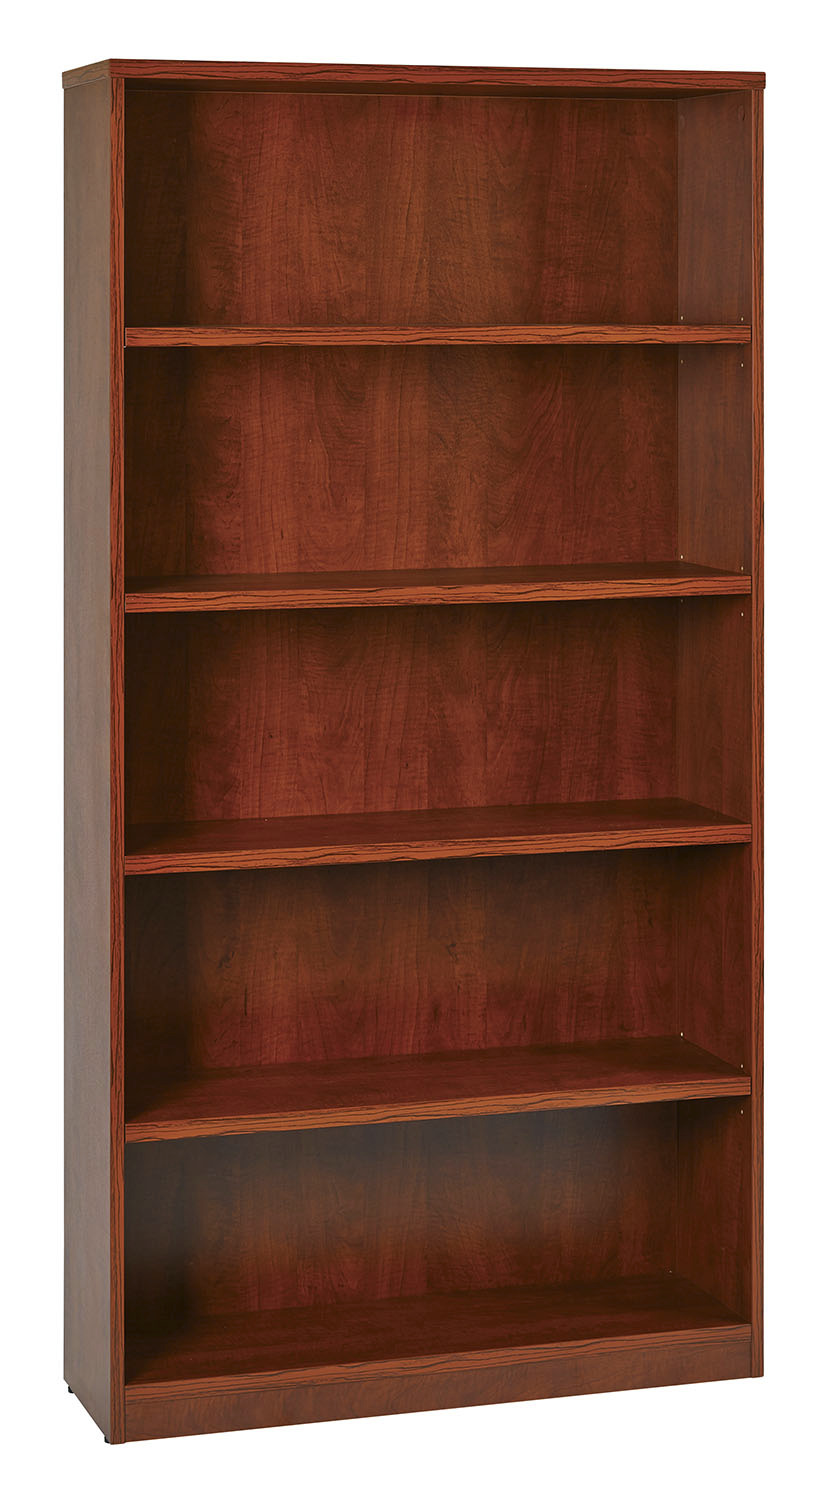 "Prestige Furniture ptf es65bc Essentials 65"" High Bookcase"